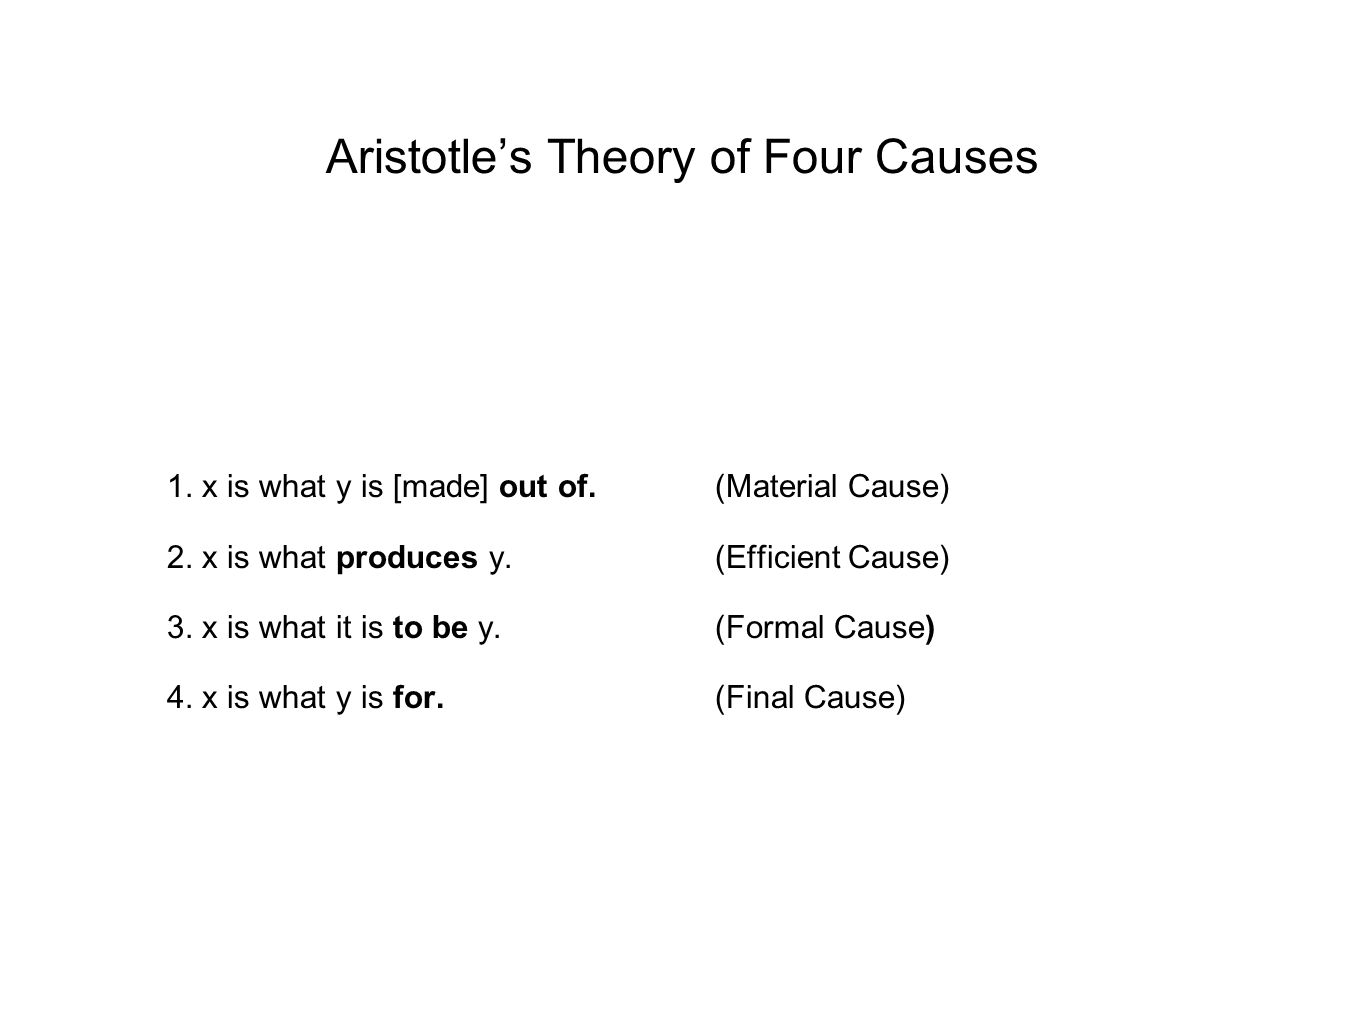 Aristotle's Theory of Four Causes